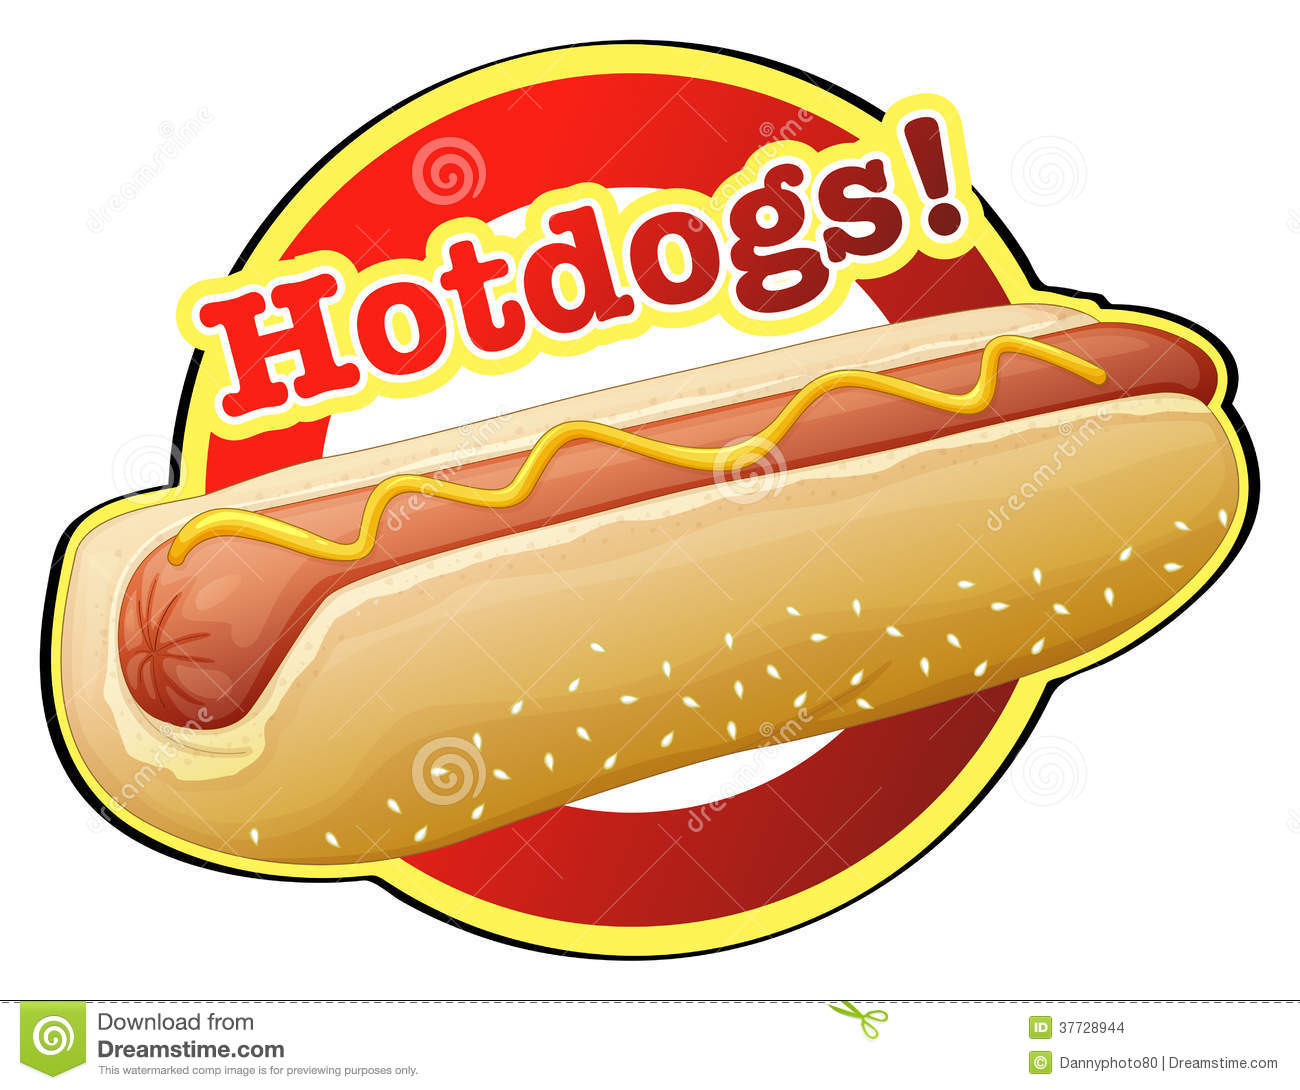 Illustration of a hotdog label on a white background.